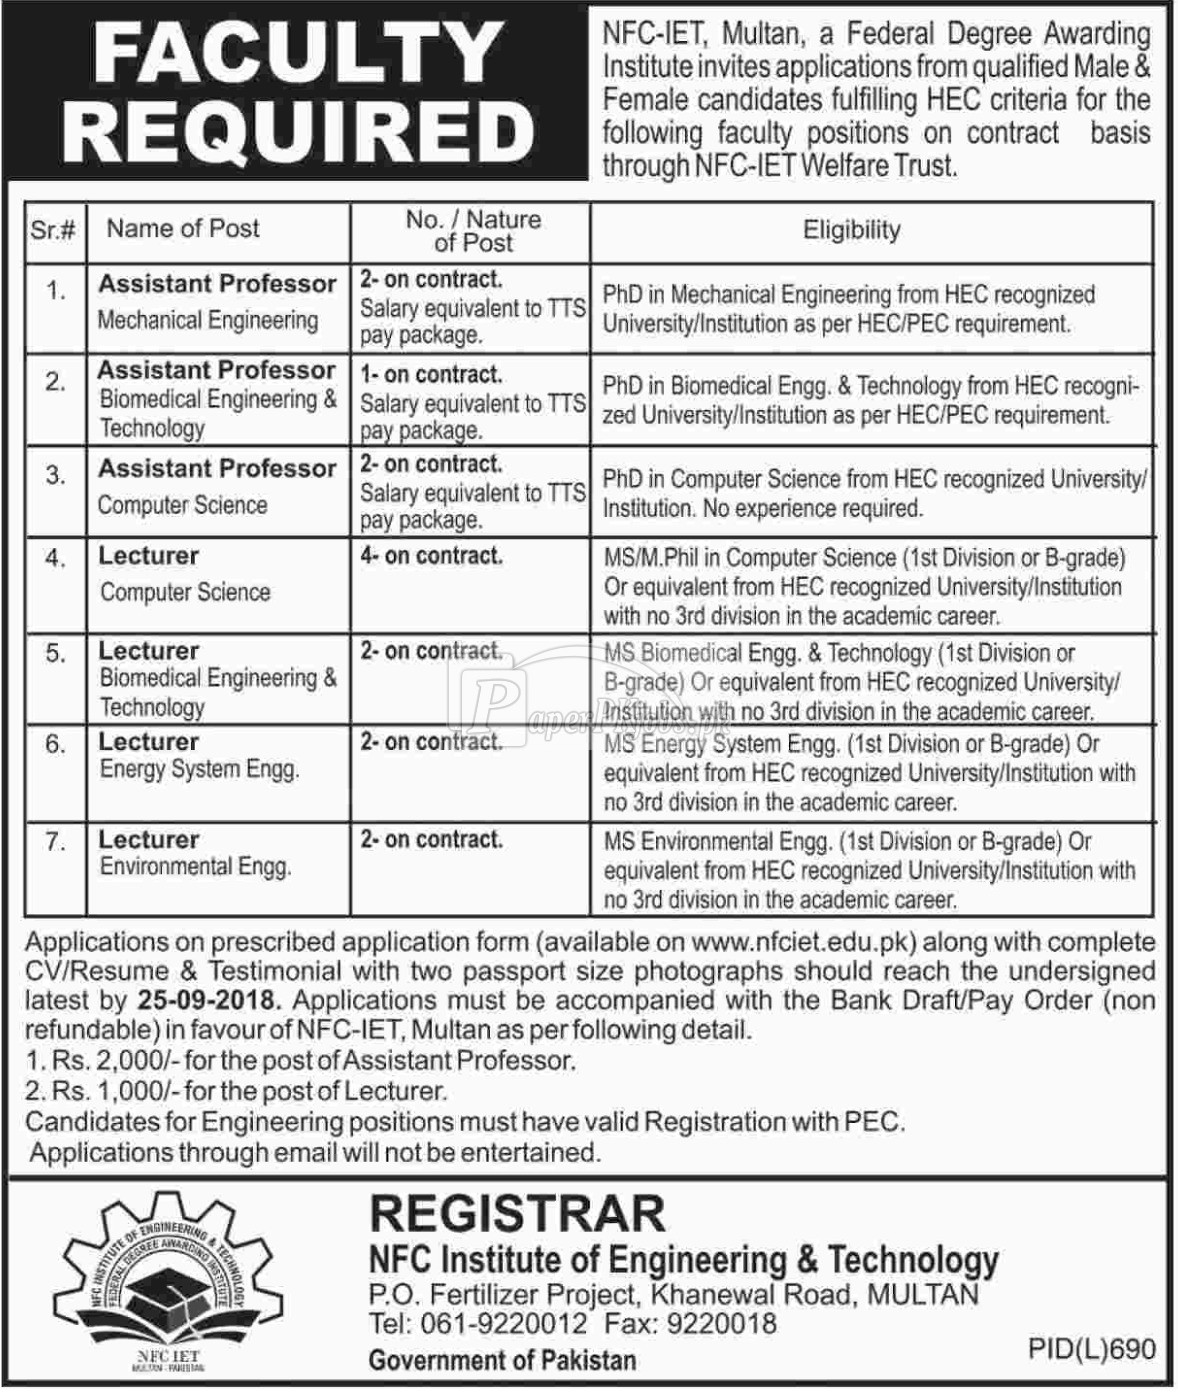 NFC Institute of Engineering & Technology Multan Jobs 2018